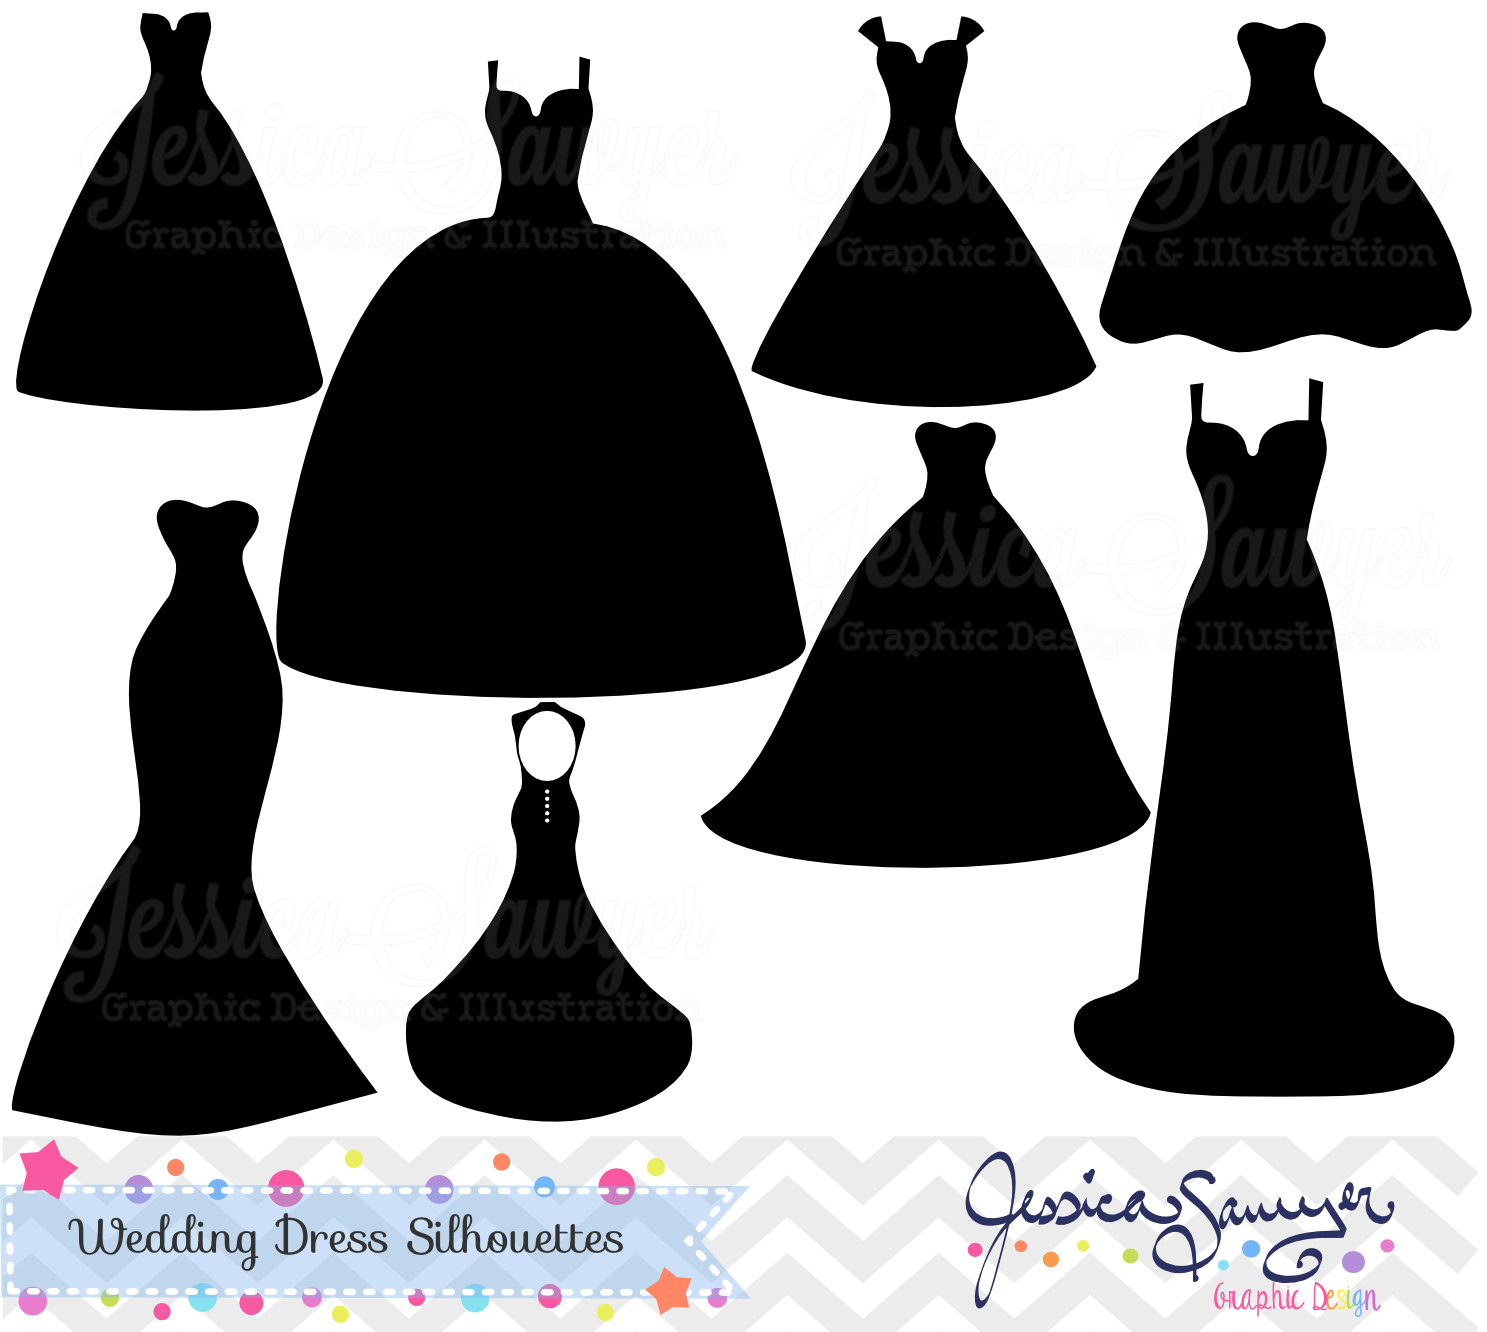 Bride clipart bridesmaid dress #6